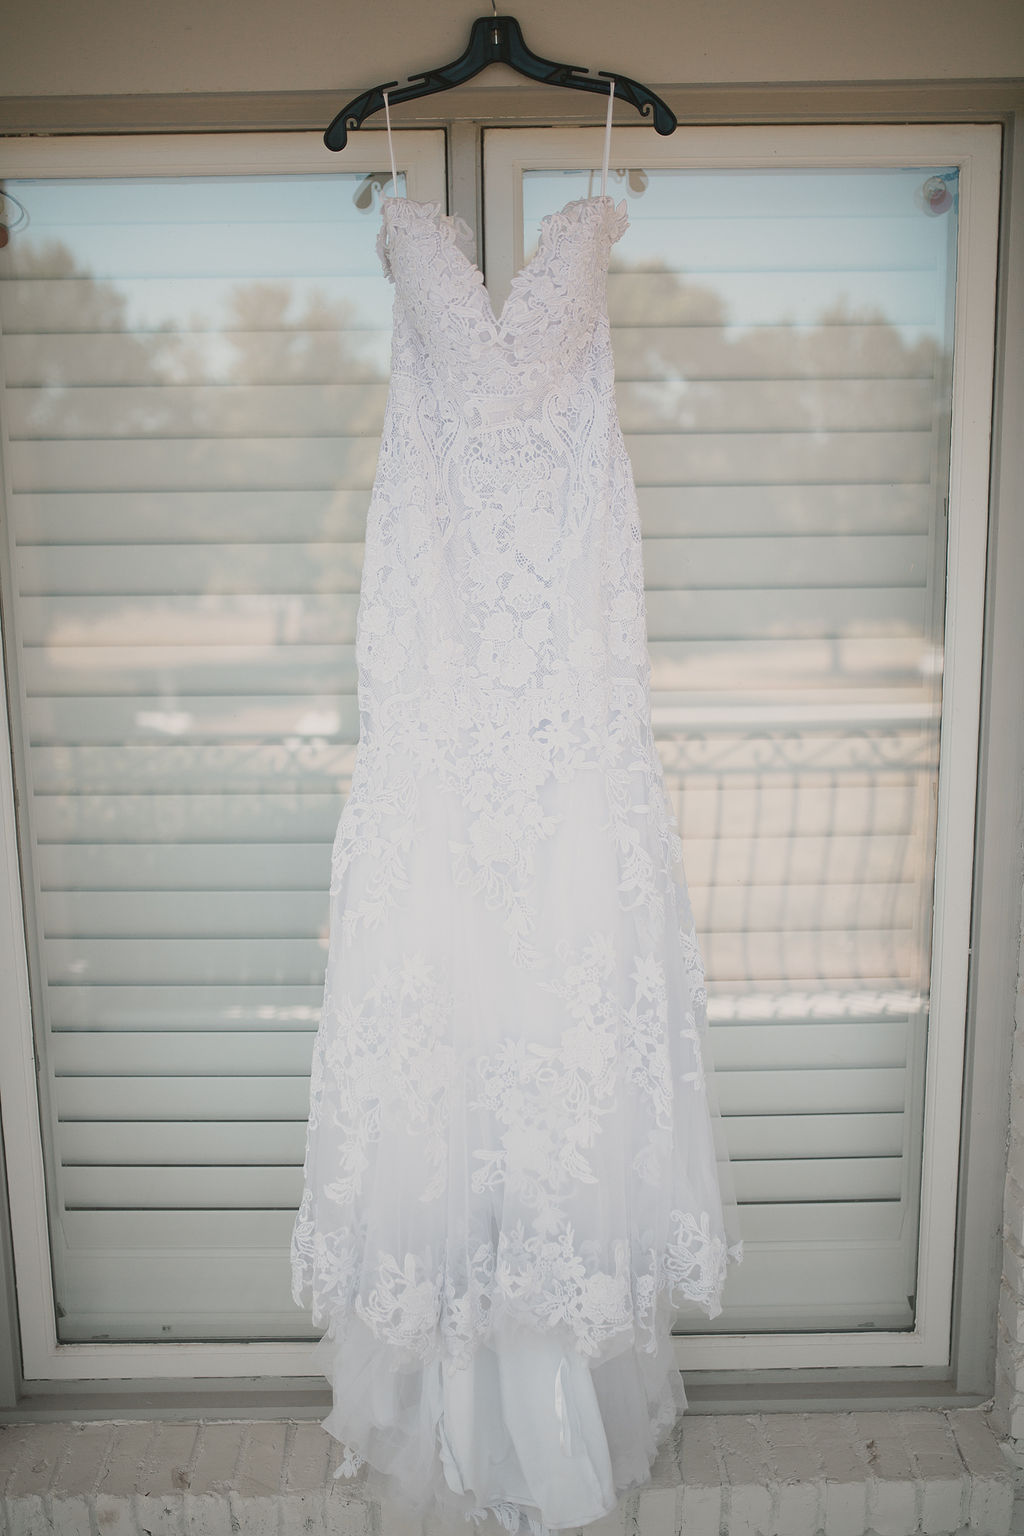 Lace wedding dress portrait: Romantic Outdoor Wedding at Reunion Stay